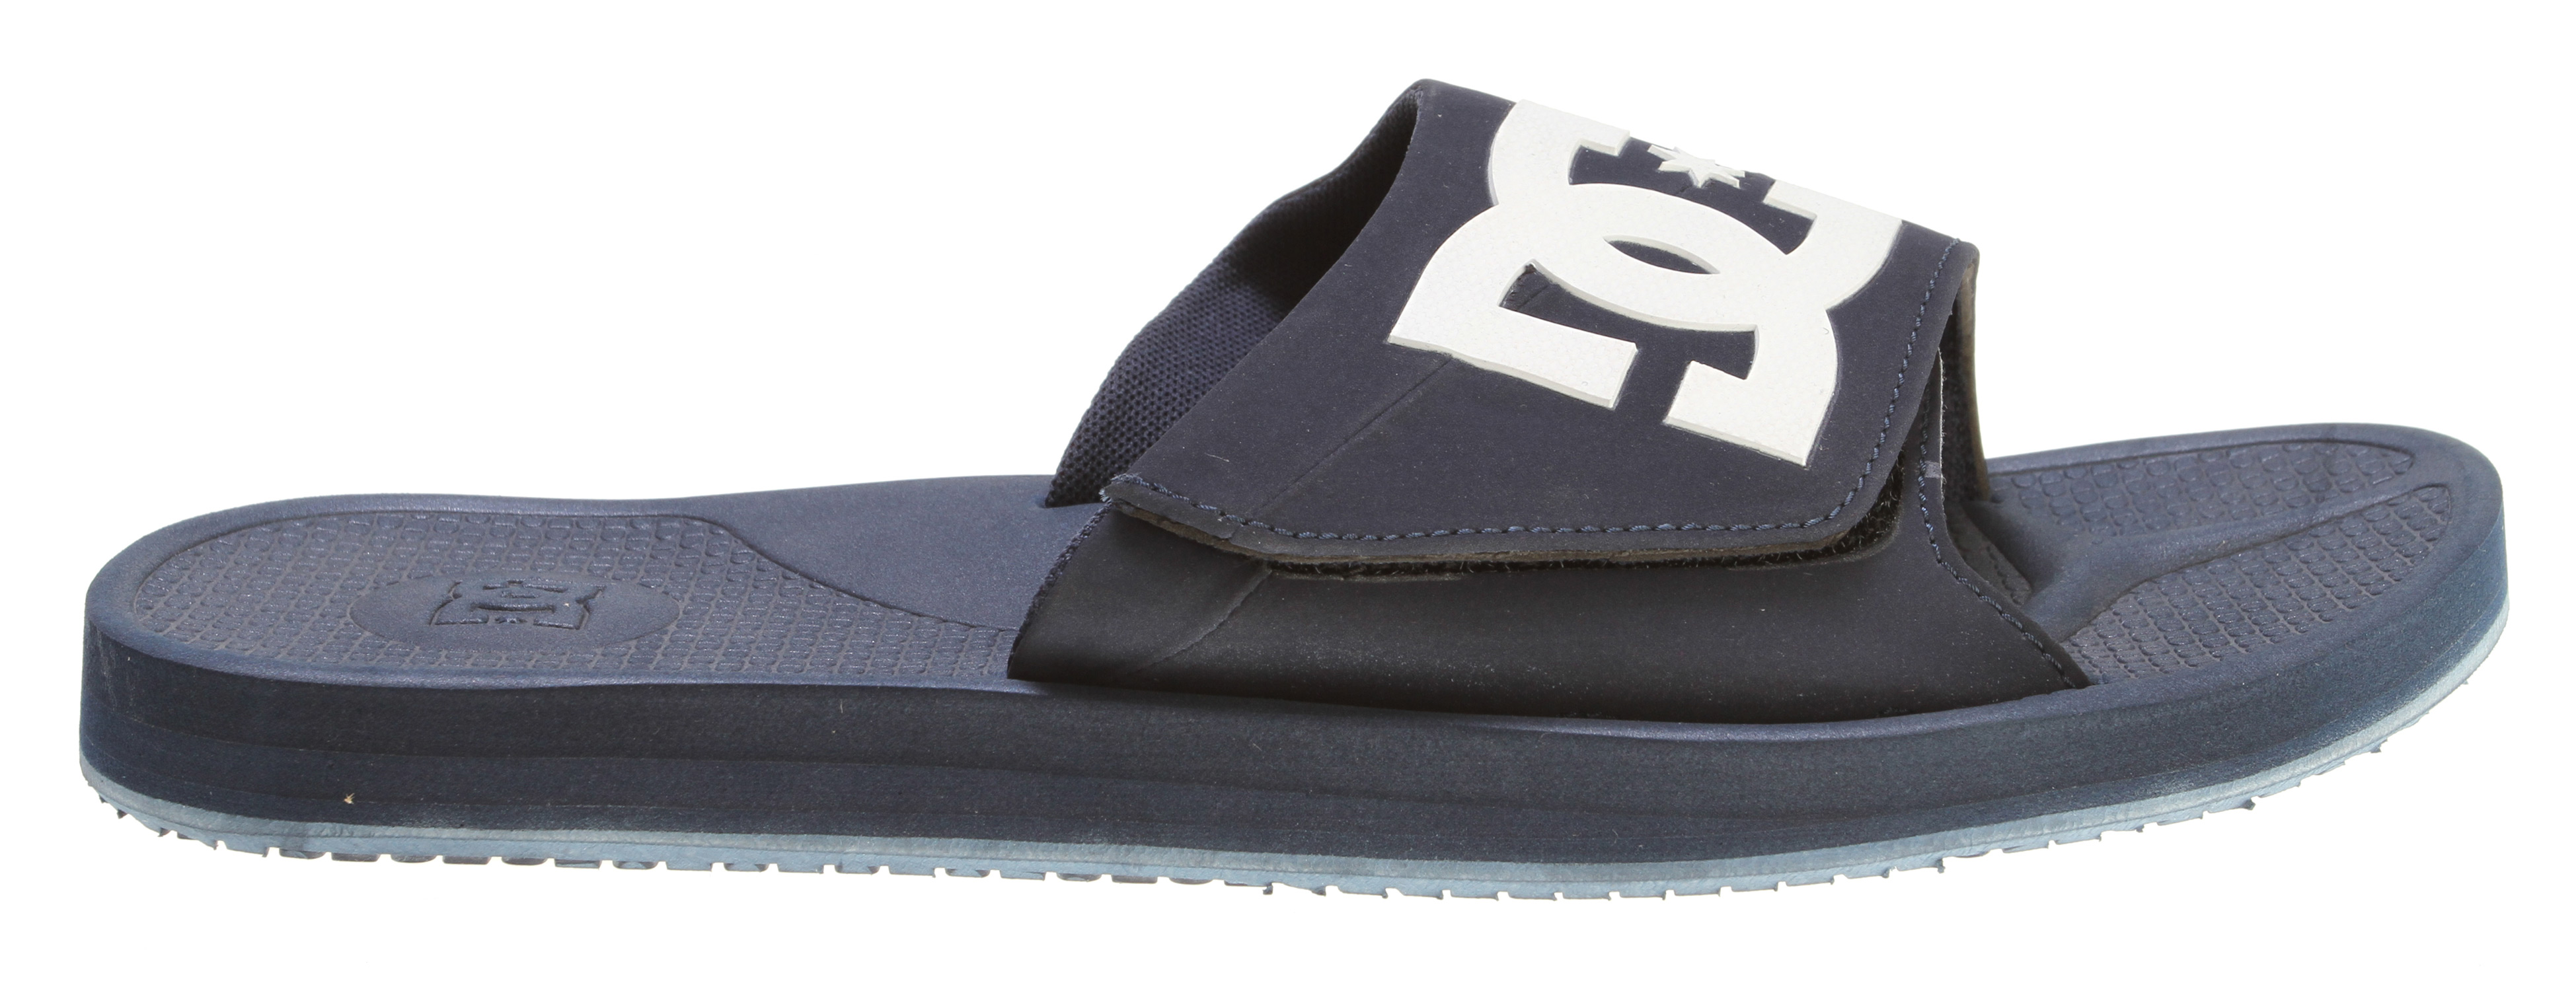 "Skateboard Key Features of the DC Graffik Slide SN Sandals: Nubuck or leather upper with large DC logo Adjustable hook and loop closure Comfortable EVA footbed Soft lining DC's trademarked ""Pill Pattern"" rubber outsole - $24.95"